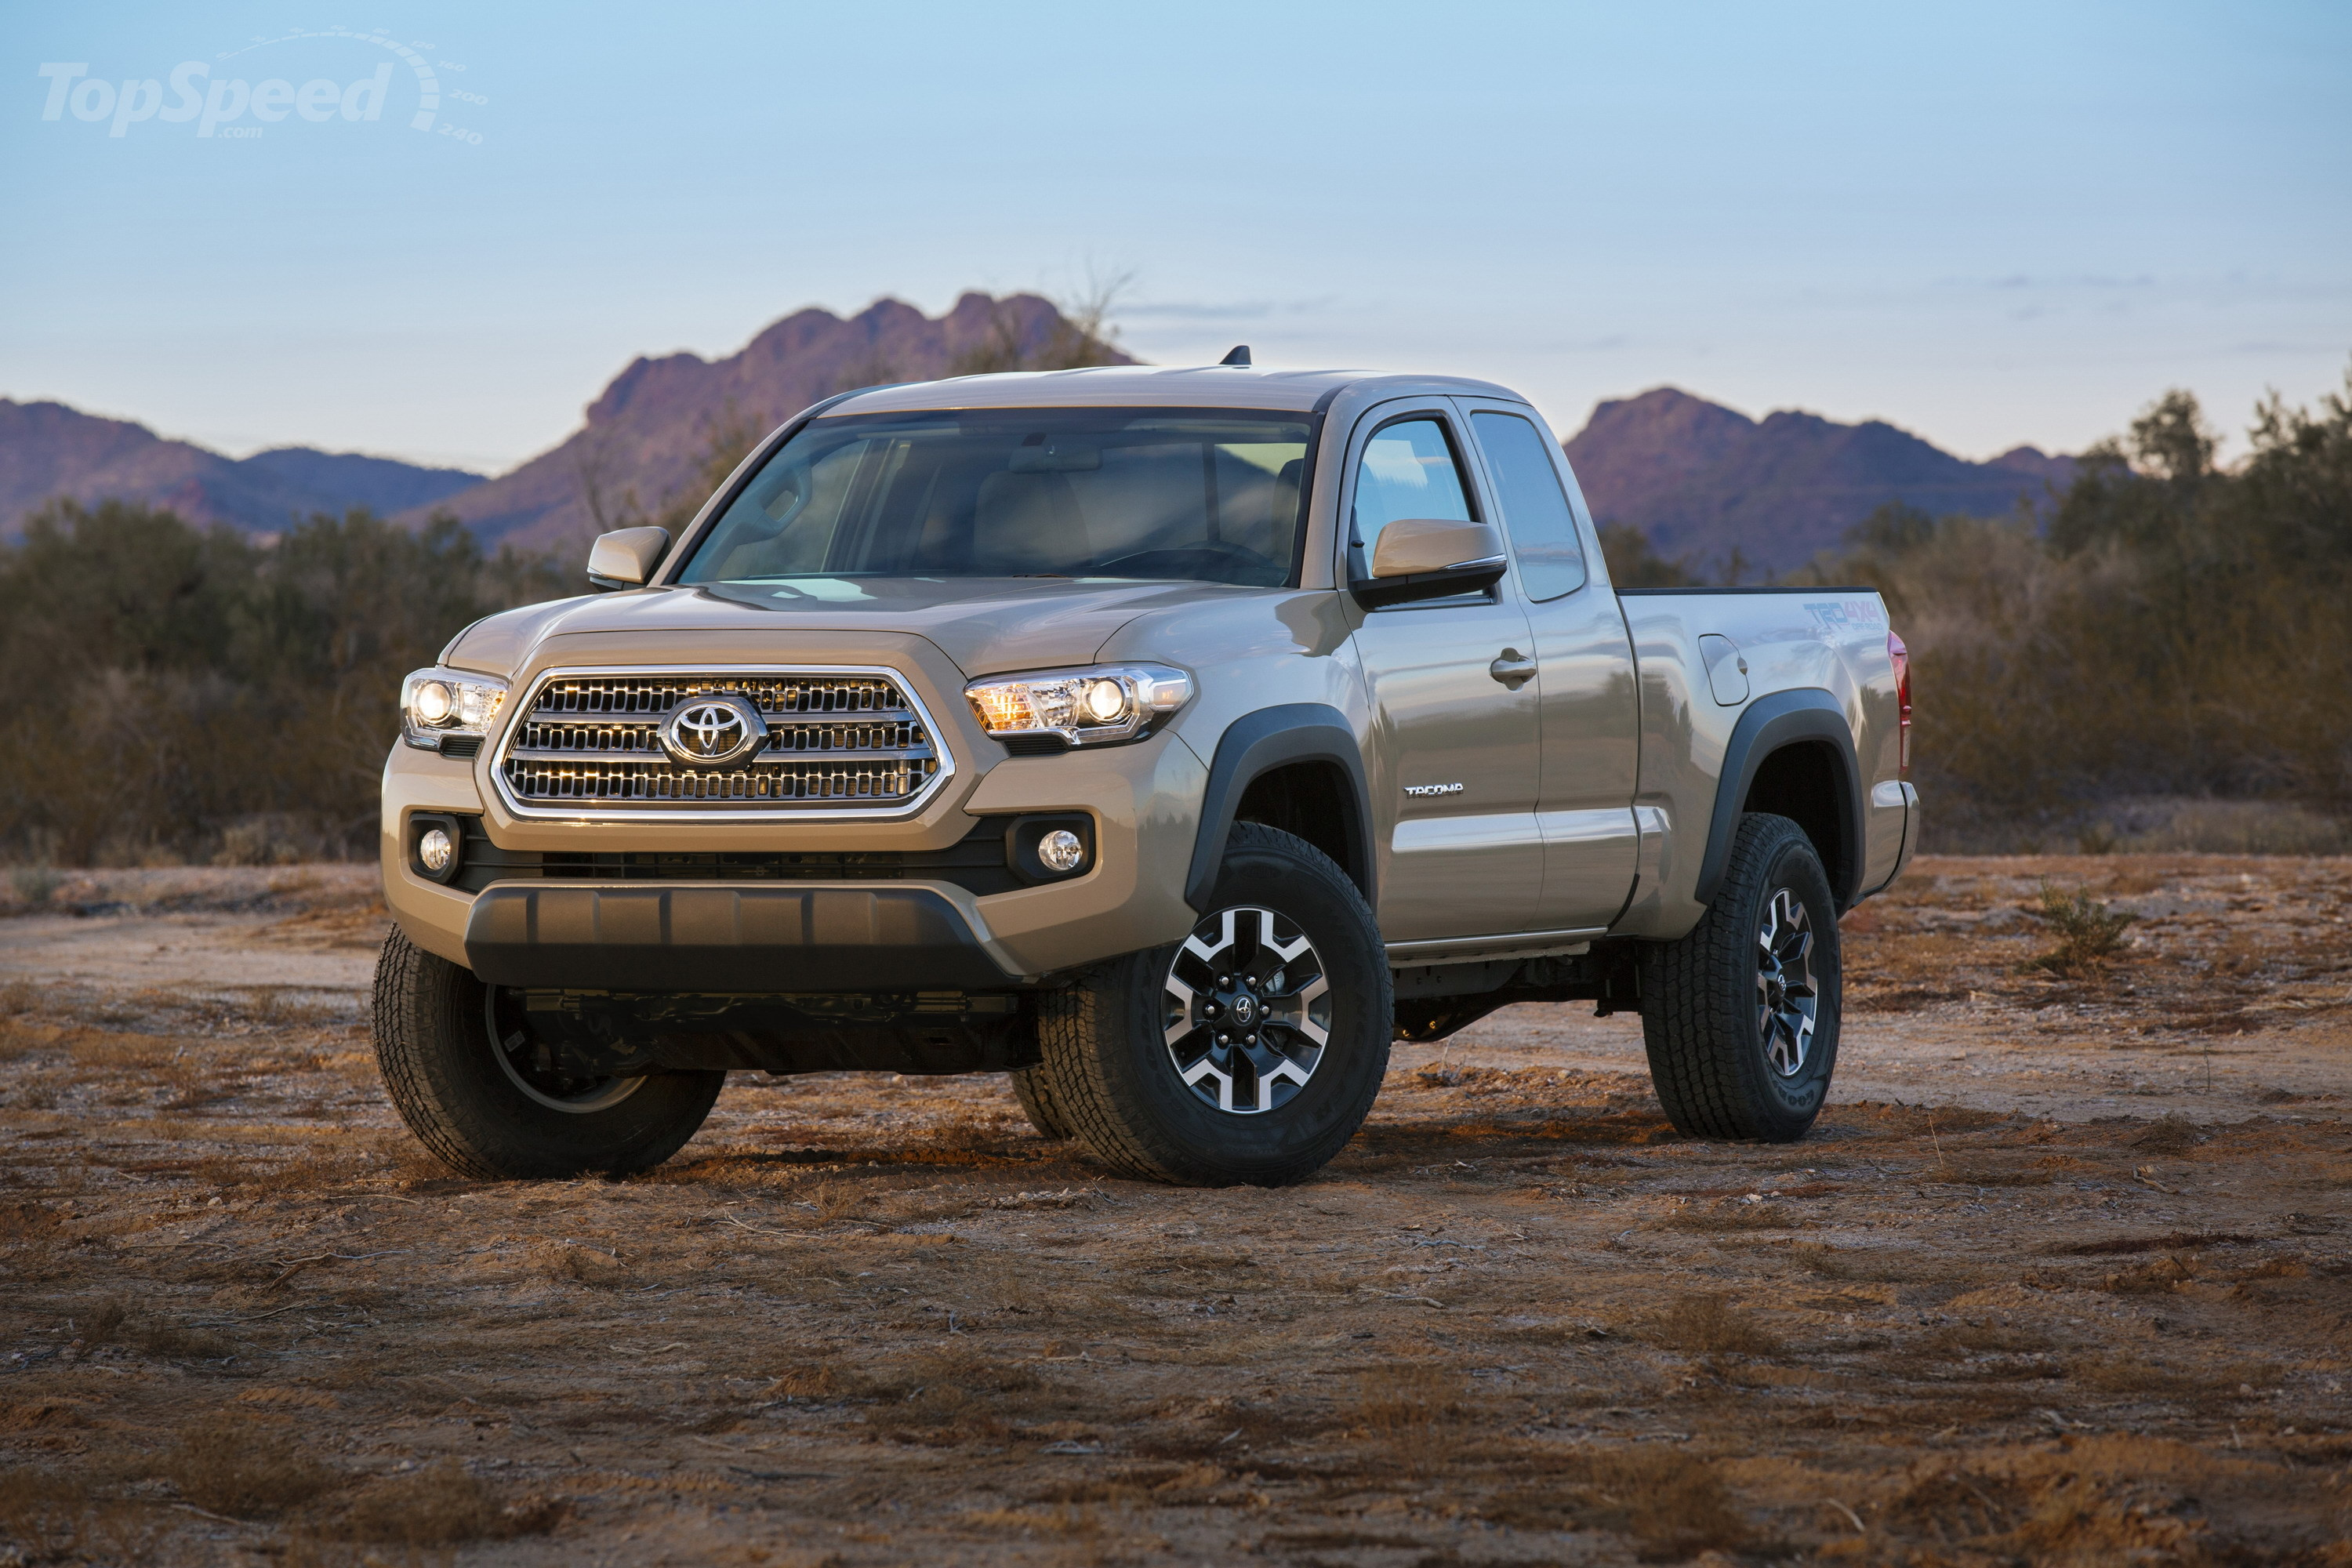 2016 toyota tacoma picture 610527 truck review top speed. Black Bedroom Furniture Sets. Home Design Ideas